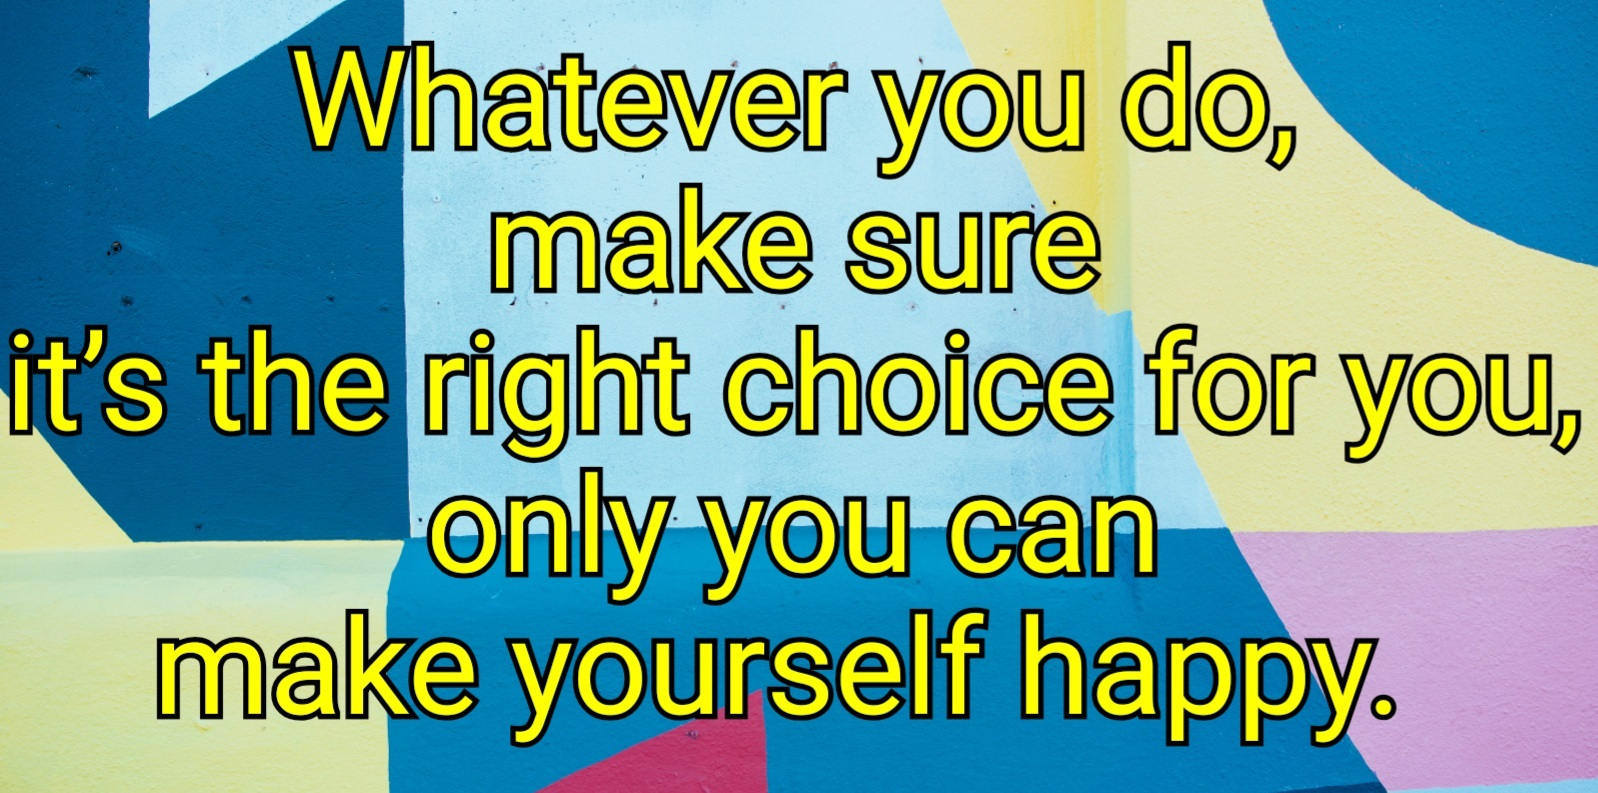 quote  Whatever you do, make sure it's the right choice for you, you can only make yourself happy.